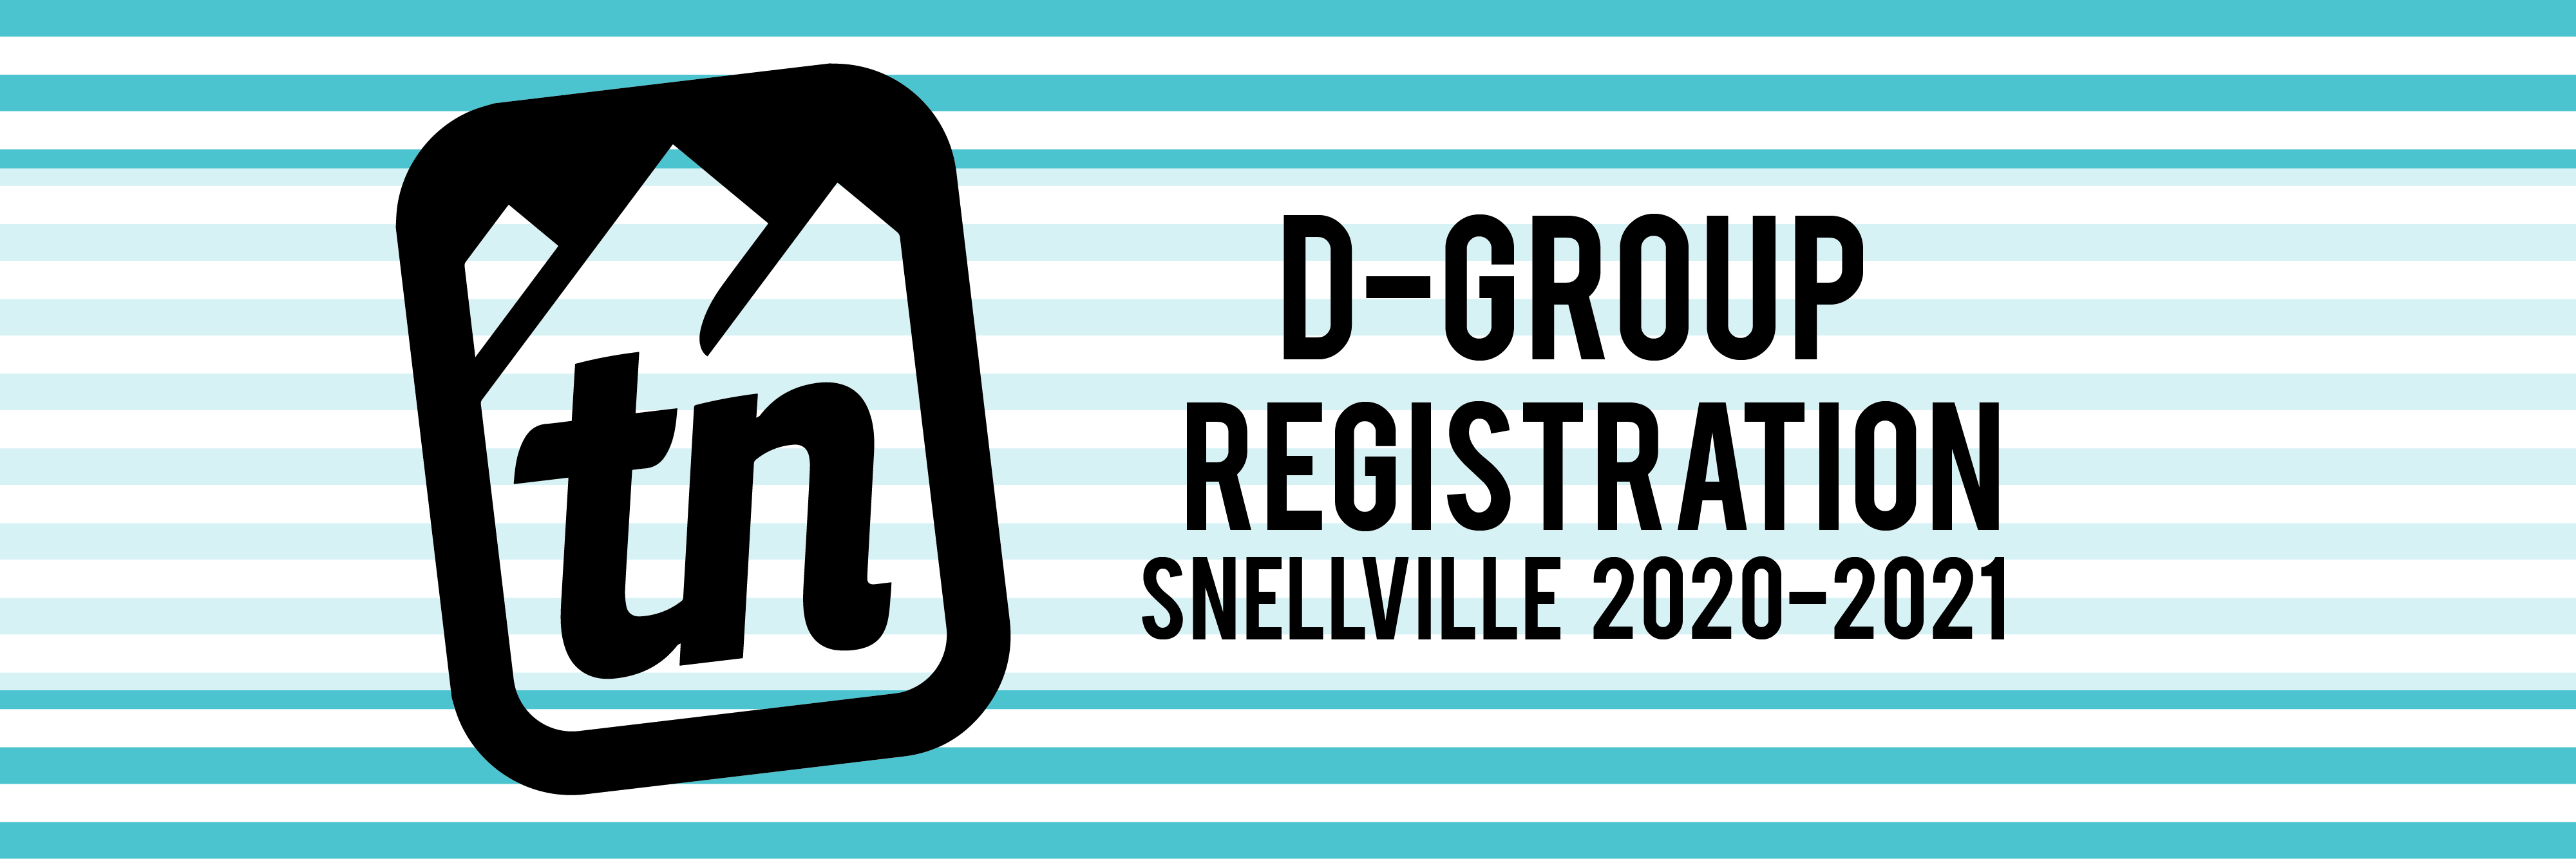 SNELLVILLE: TrueNorth D-Group Registration 2020-21